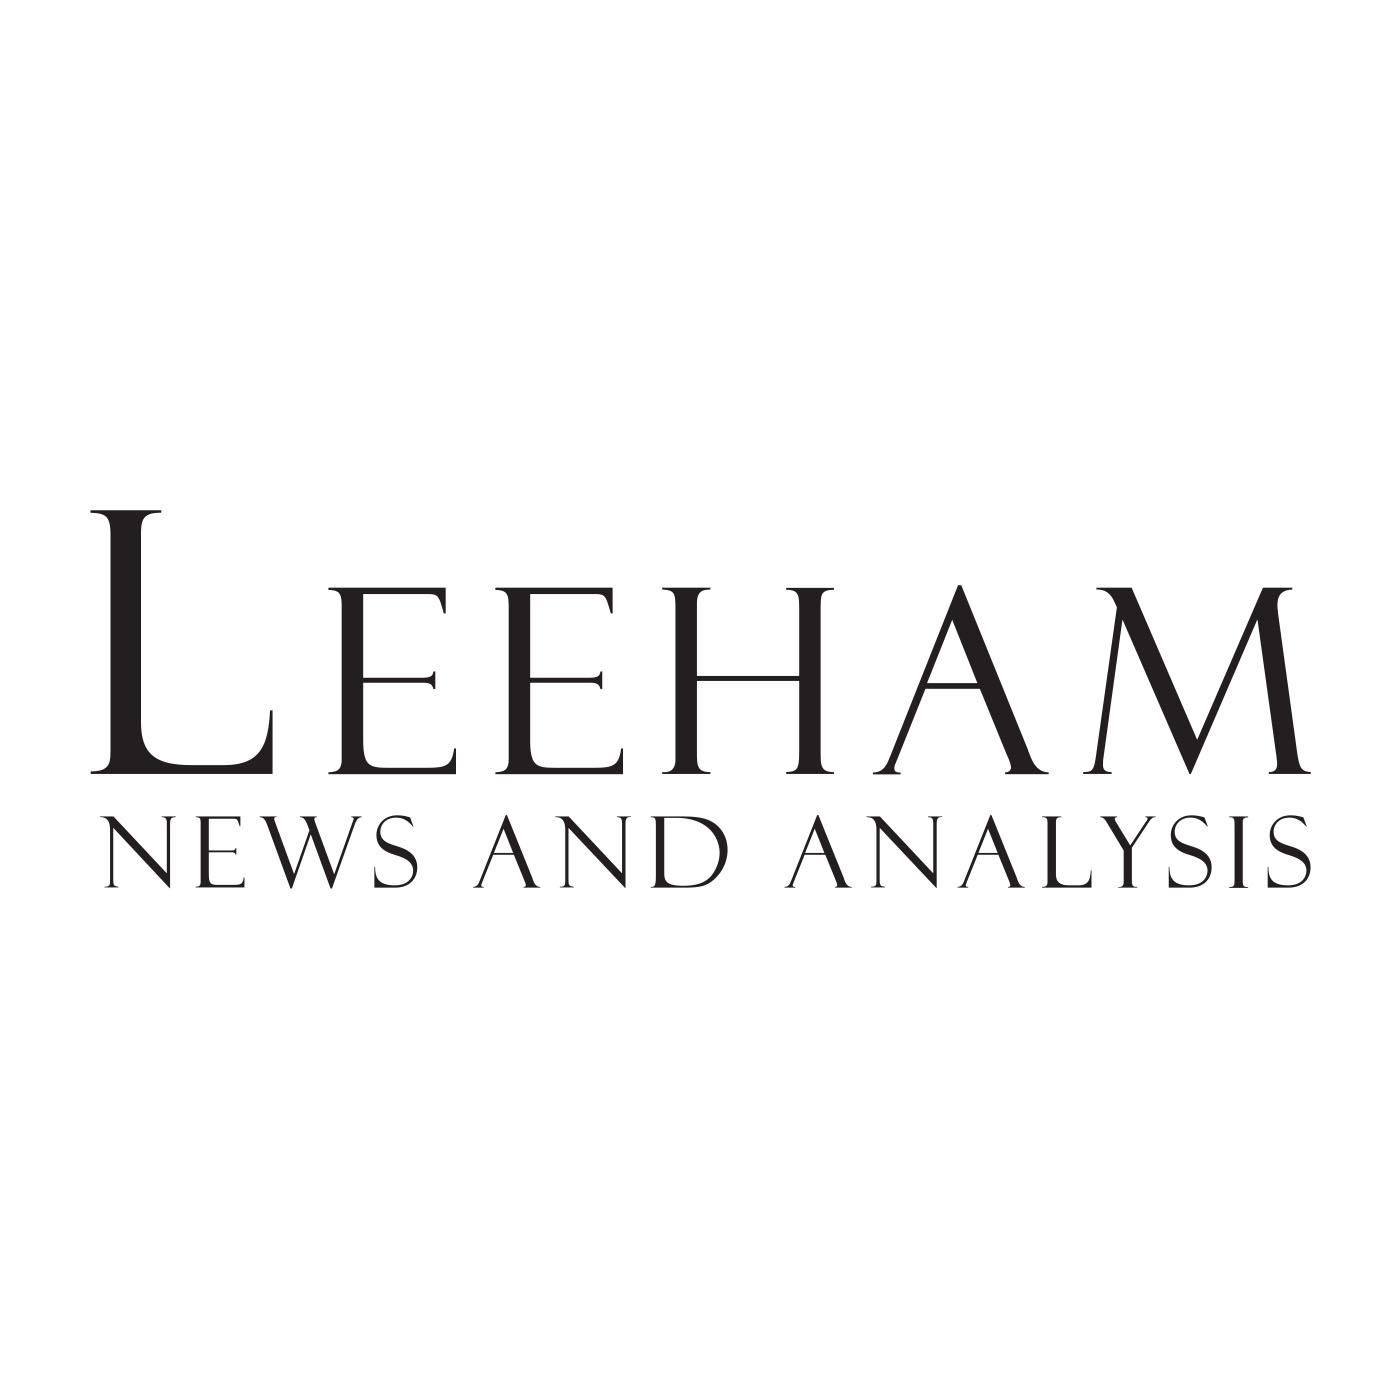 Leeham News and Analysis